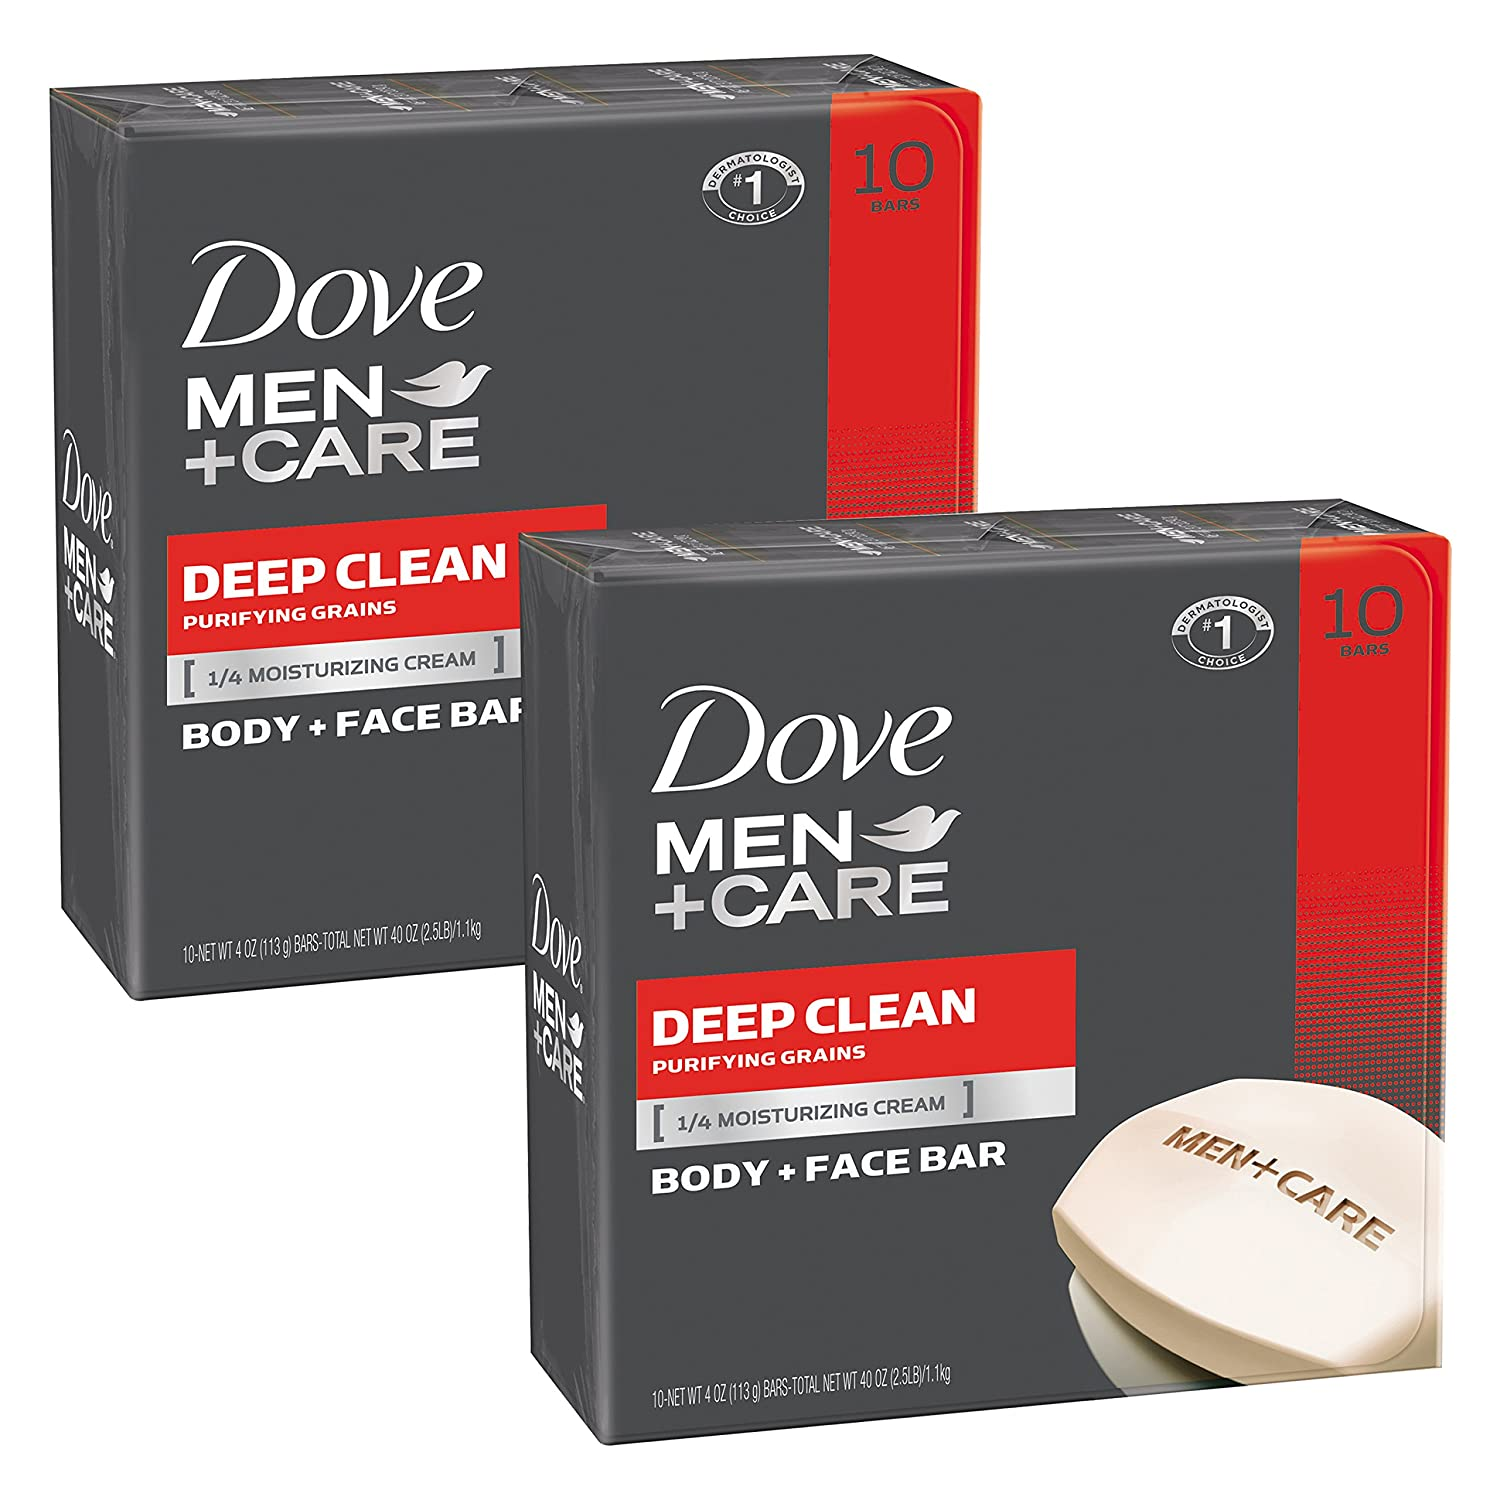 Dove Men+Care Body and Face Bar Deep Clean 4 Ounce, 20 Count